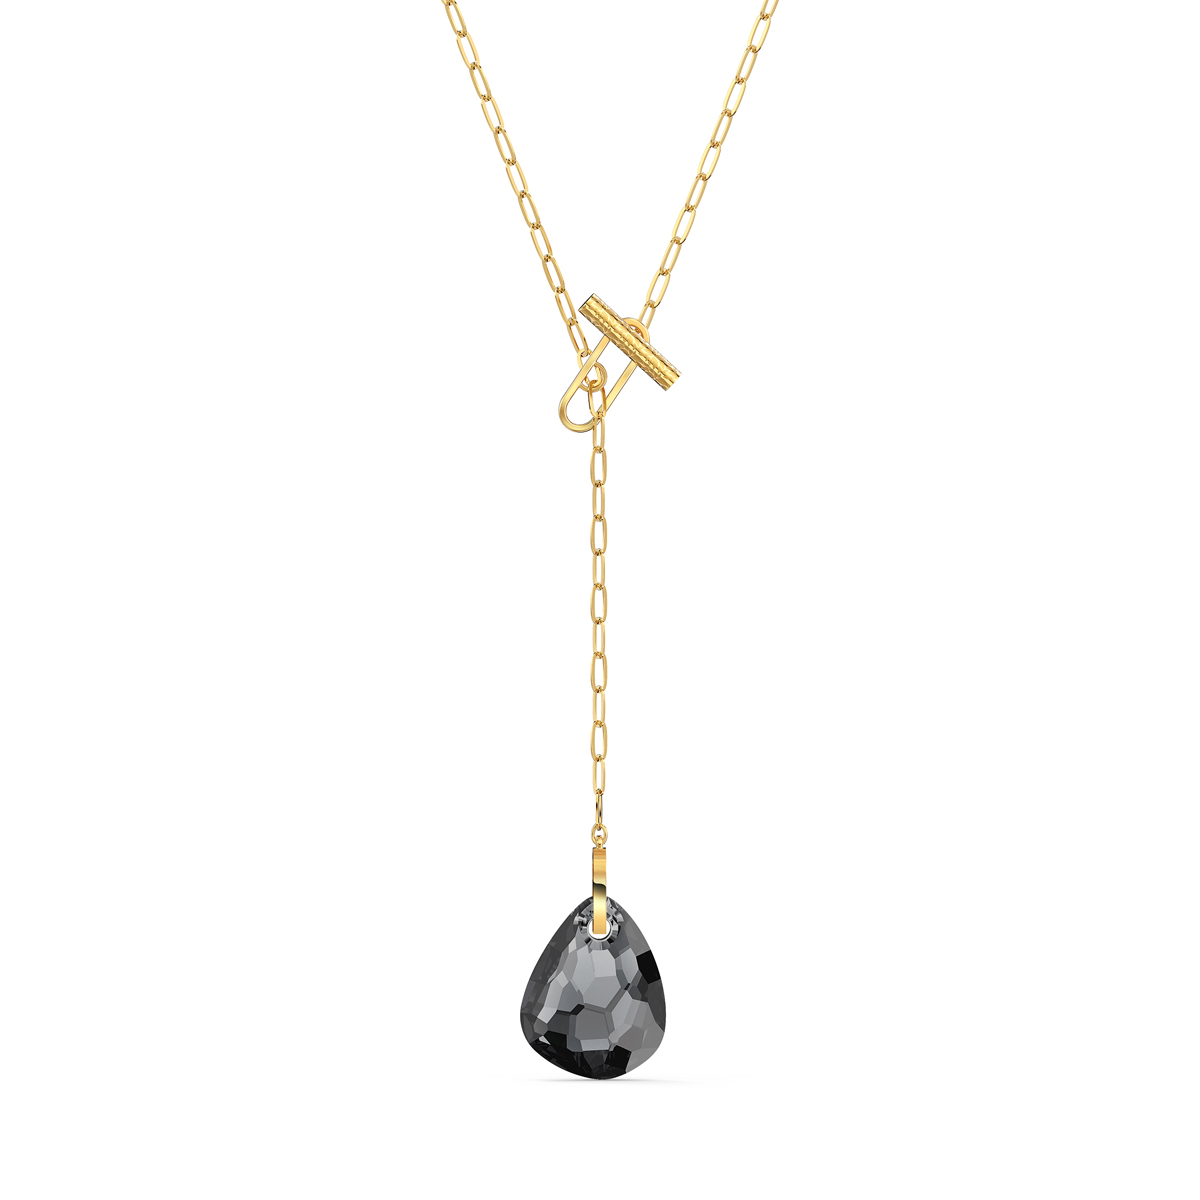 Swarovski T Bar Y Necklace, Gray, Gold Tone Plated